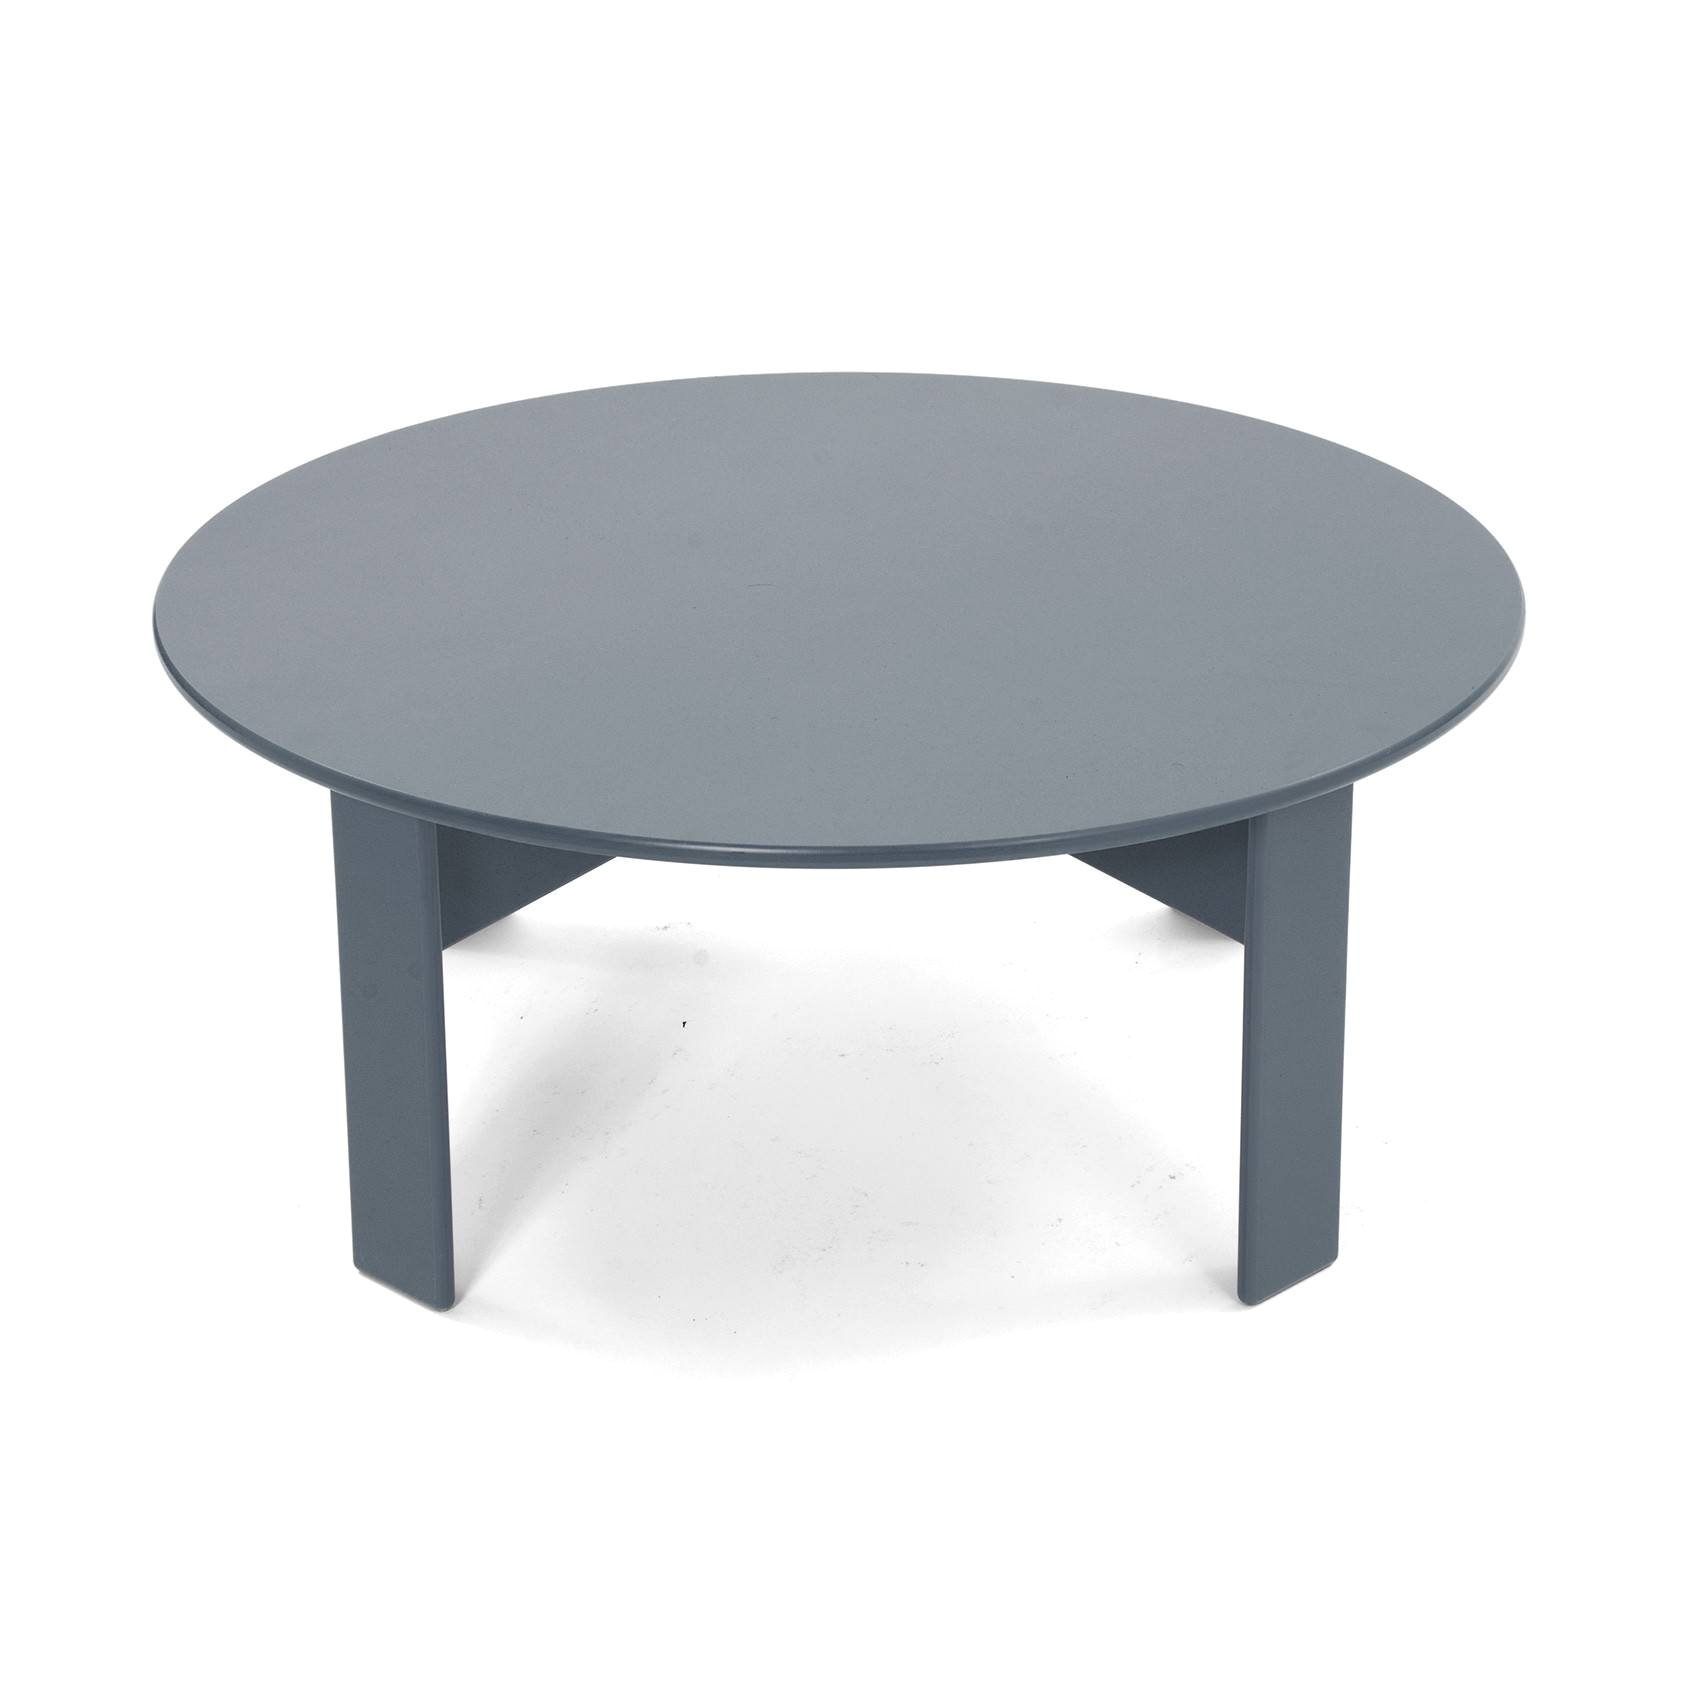 kidney shaped coffee table bradshomefurnishings glass collections accent rustic living room sets sedona furniture metal sawhorse legs outside lawn chairs round decor average side